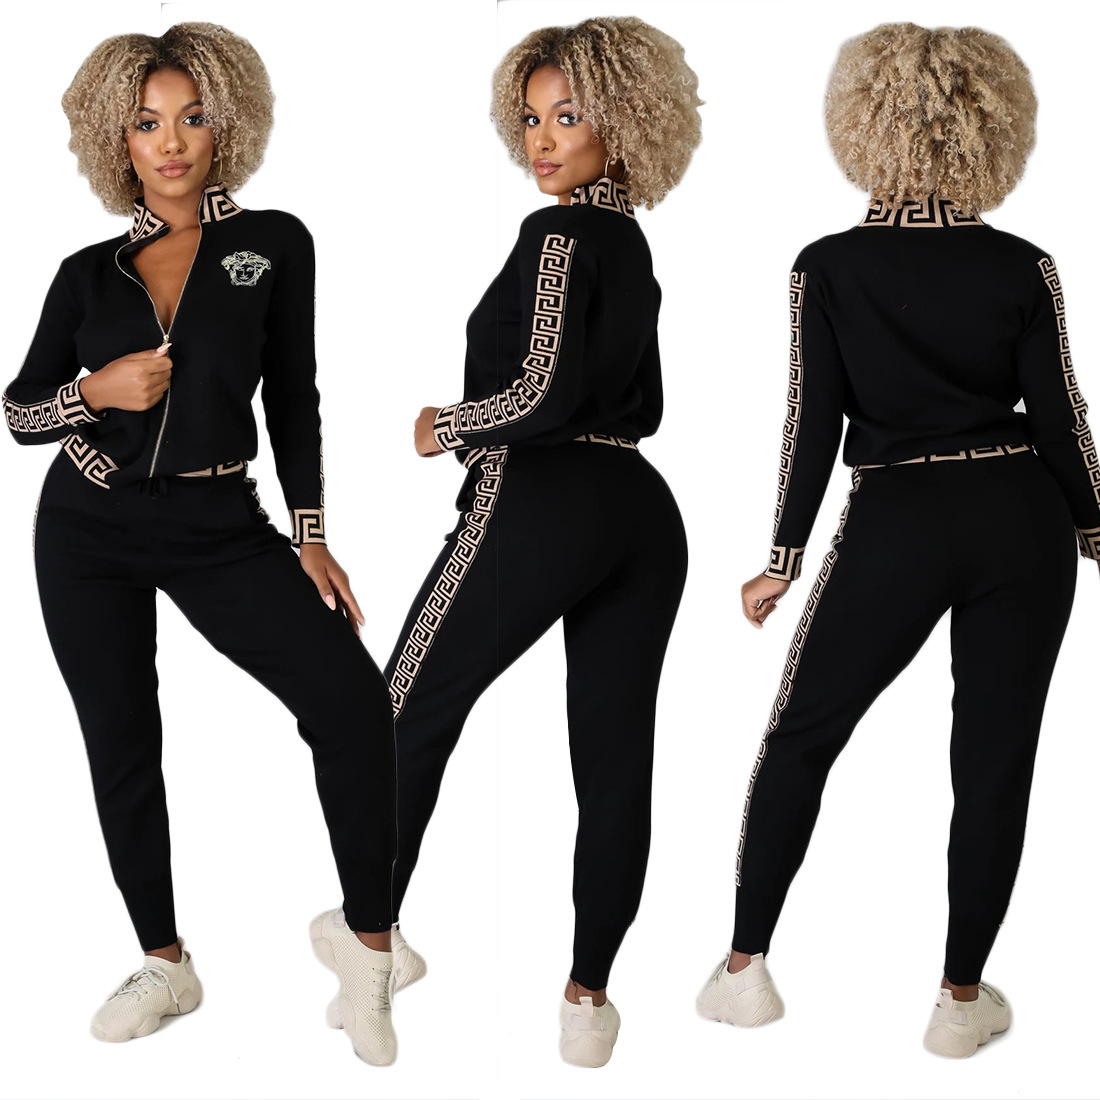 Women's Sports Suit Two-piece Suit Europe And The United States Street Clothing Women's Black Sportswear Sports Two-piece Suit